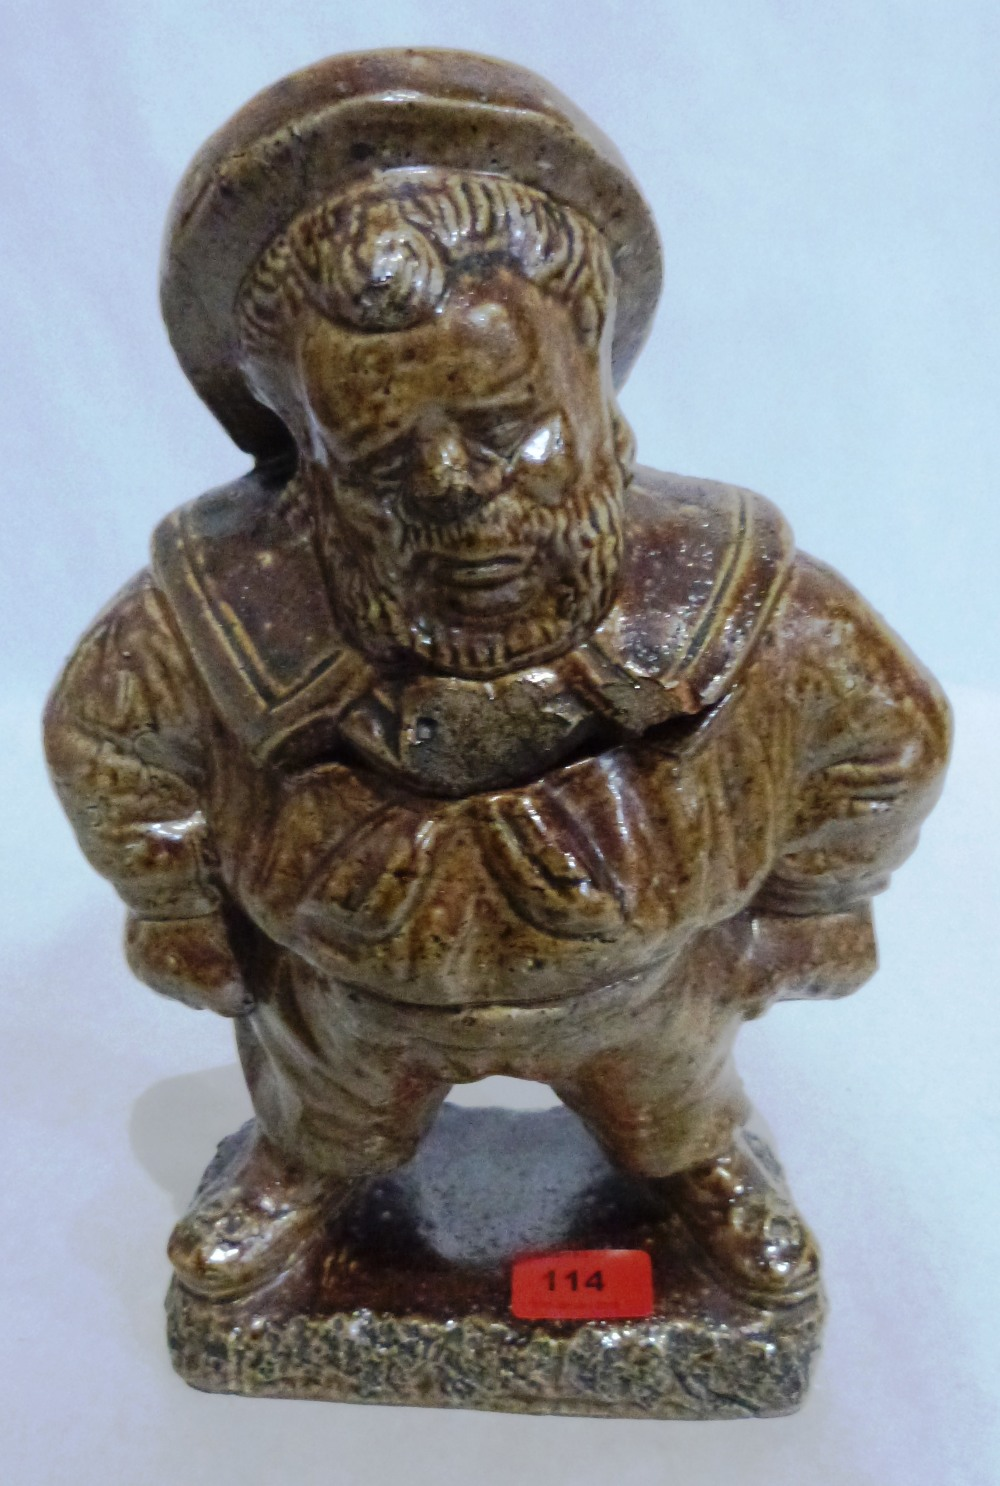 A 19th century salt glazed figural tobacco jar. 13' high. Chips to cover